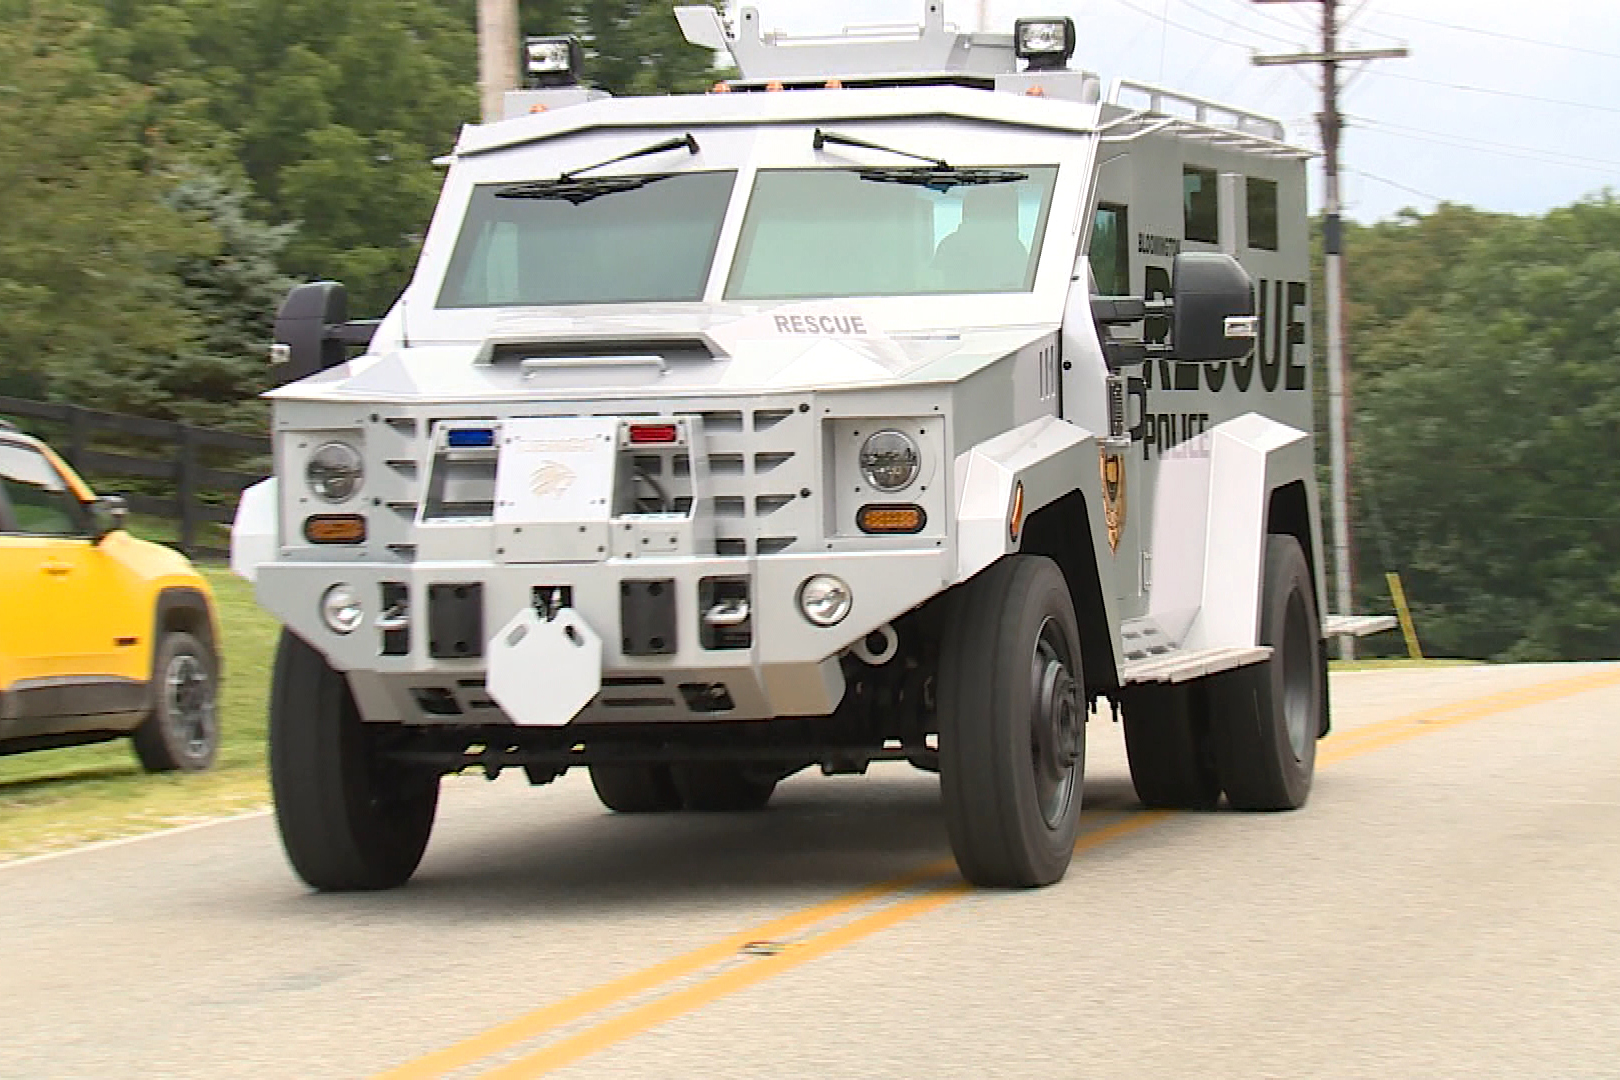 Police say the armored vehicle helped protect a negotiator during the call (Steve Burns, WFIU/WTIU News).